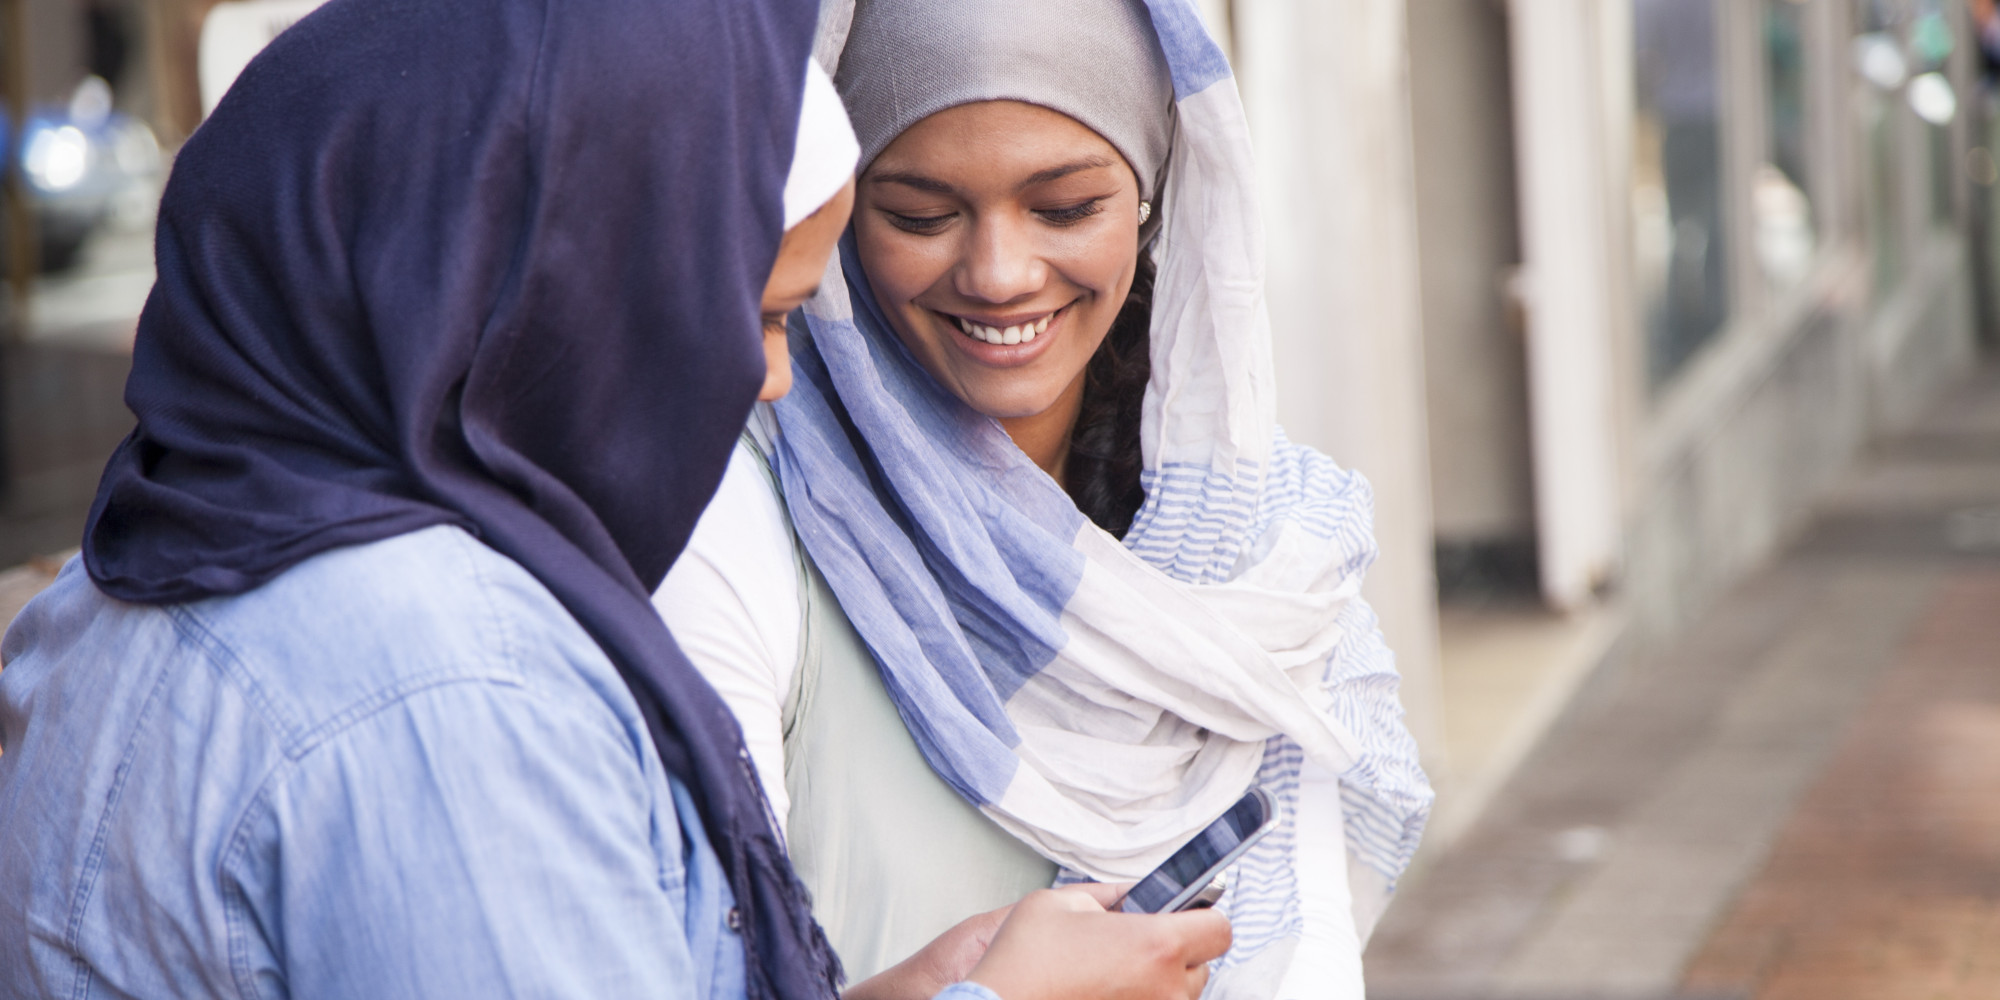 muslim single men in westgate Meet thousands of pakistani, bengali, arab, indian, sunni, or shia singles in a safe and secure environment free sign up and get connecting with muslim dating.